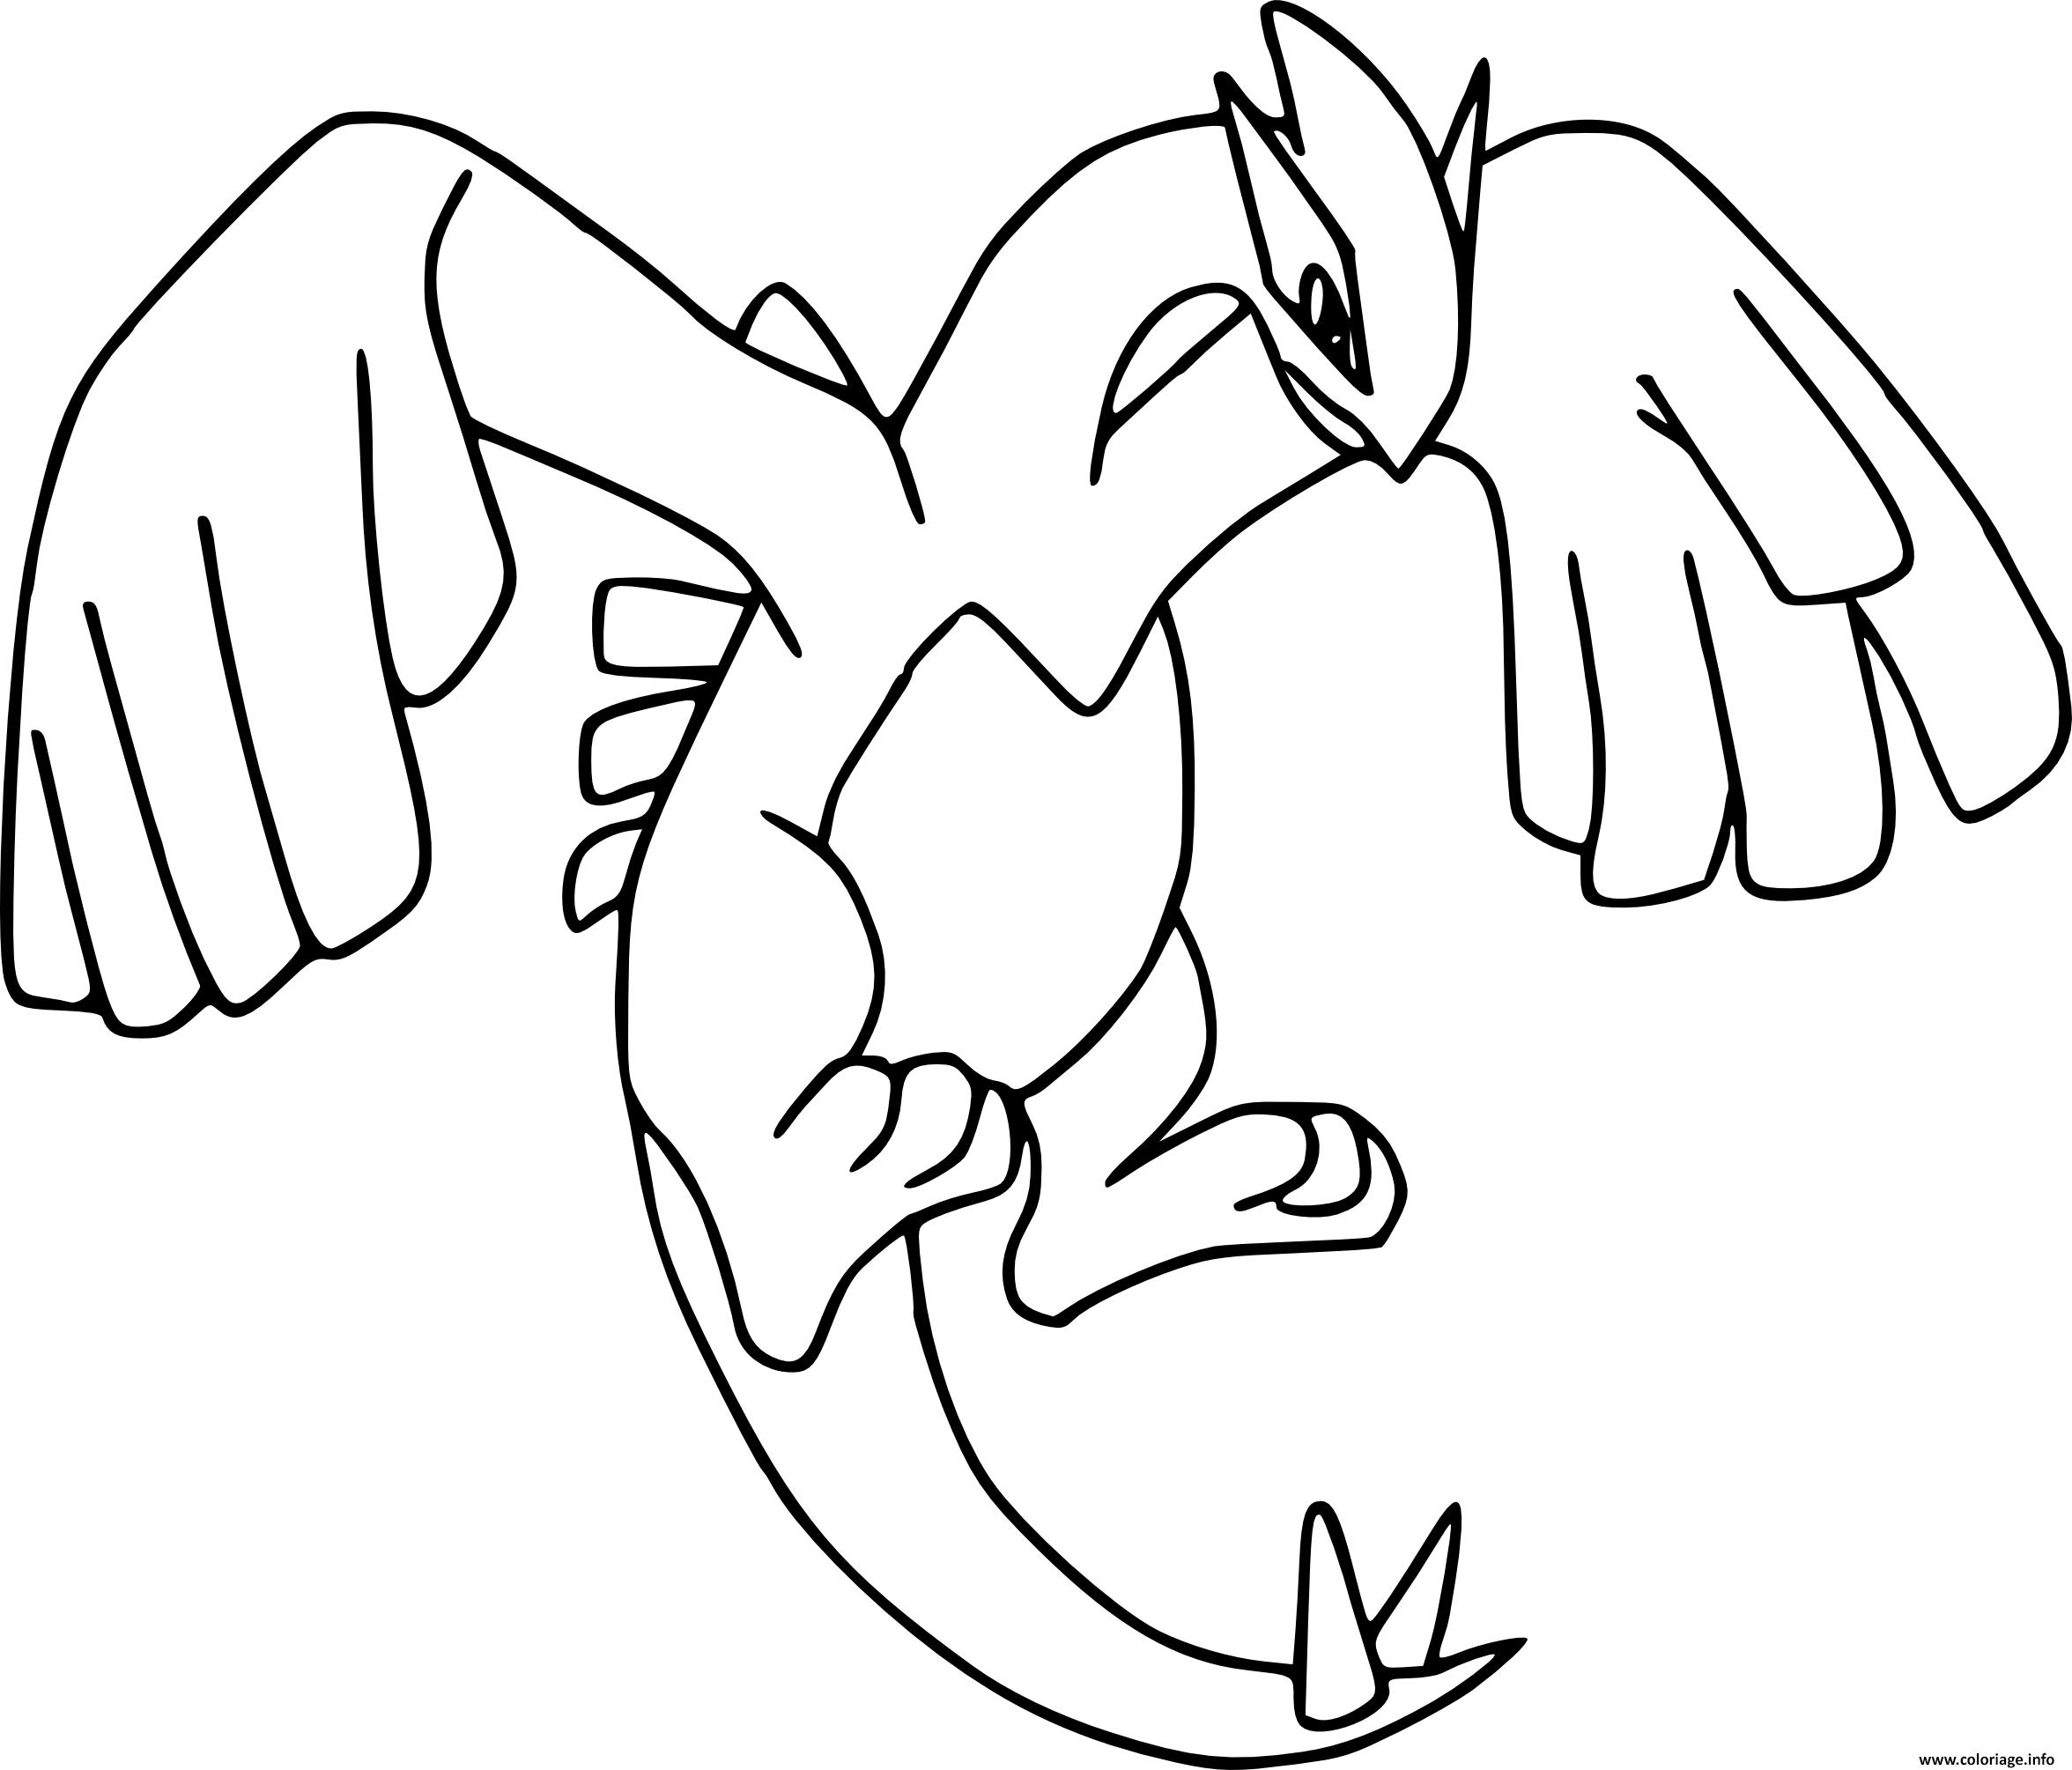 Coloriage pokemon legendaire lugia dessin - Coloriage de pokemon a imprimer ...